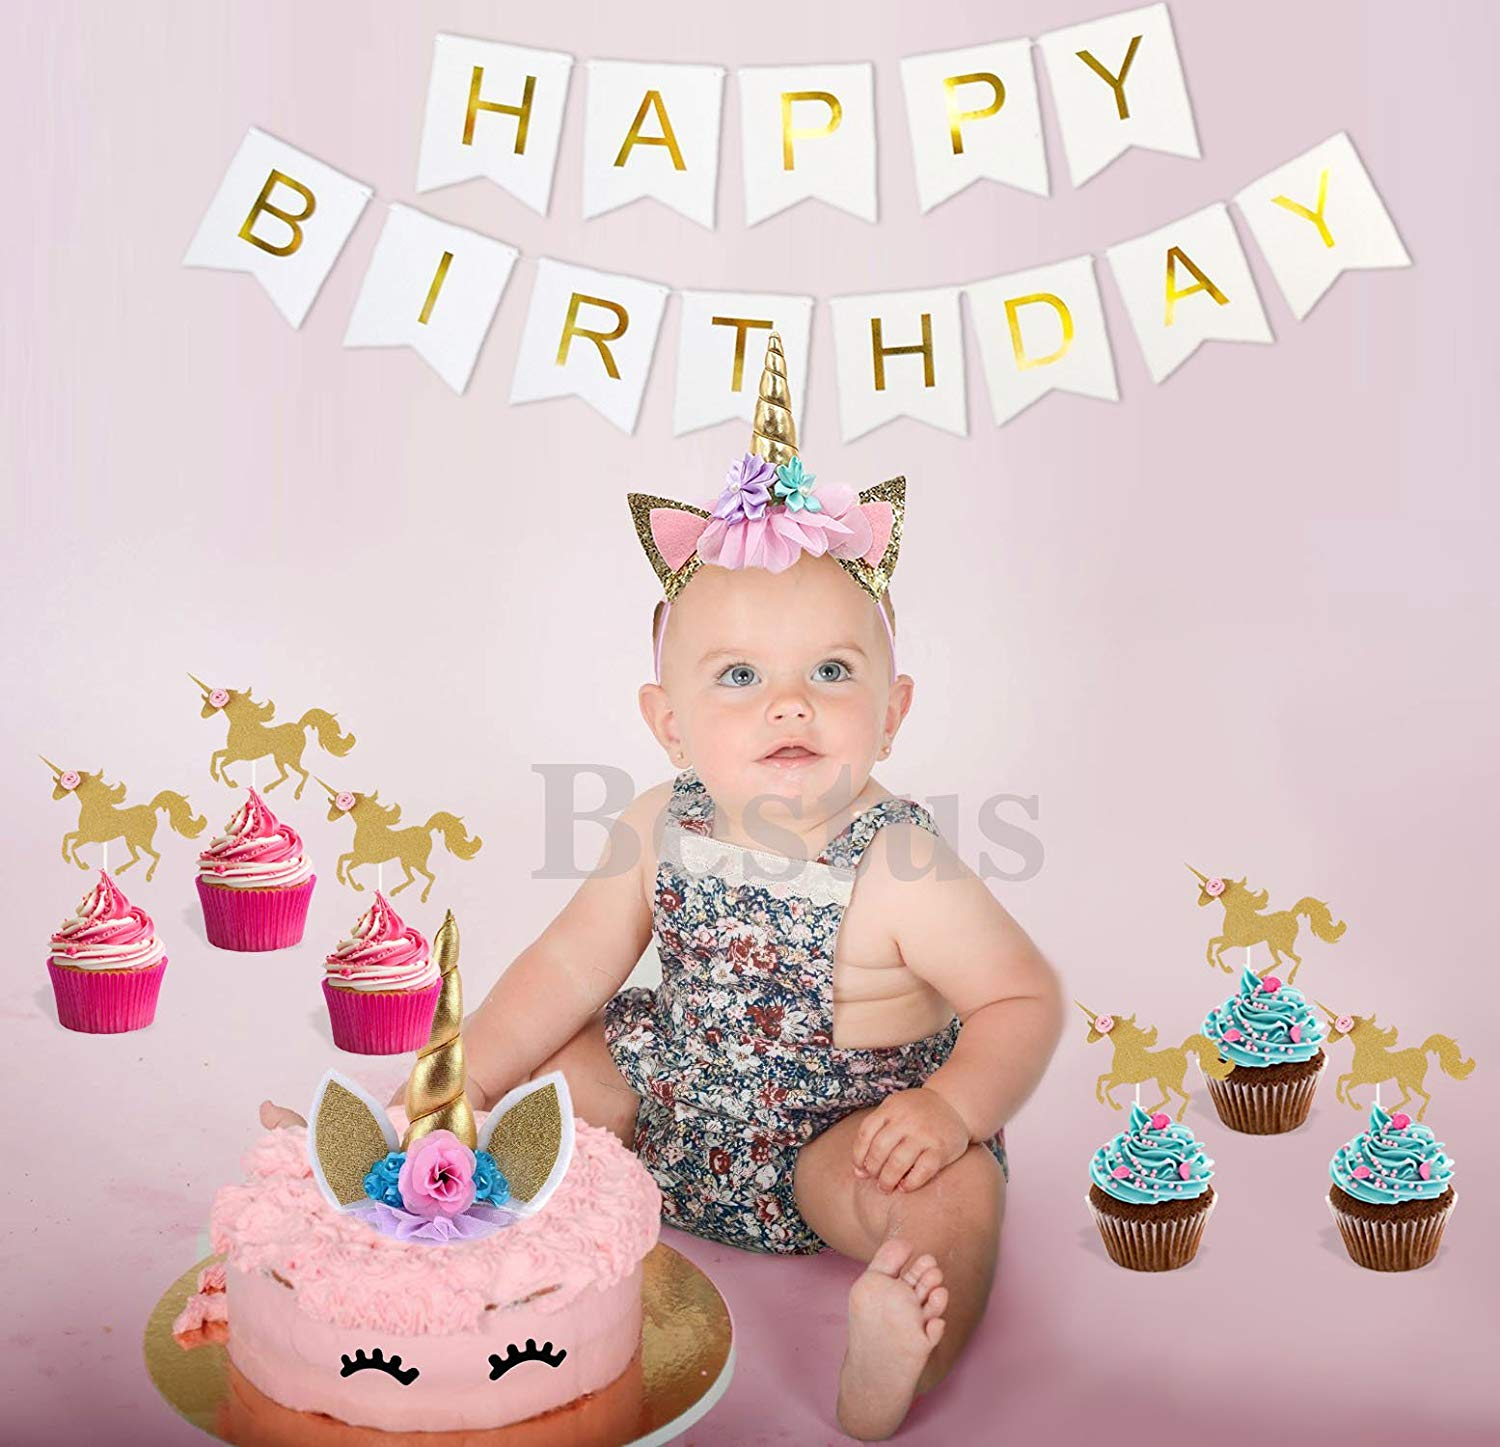 Bands Without Stones 1pc Happy Birthday Basketball Cupcake Cake Toppers Art Door Cake Flags Kids Birthday Party Baby Shower Wedding Baking Decor Complete In Specifications